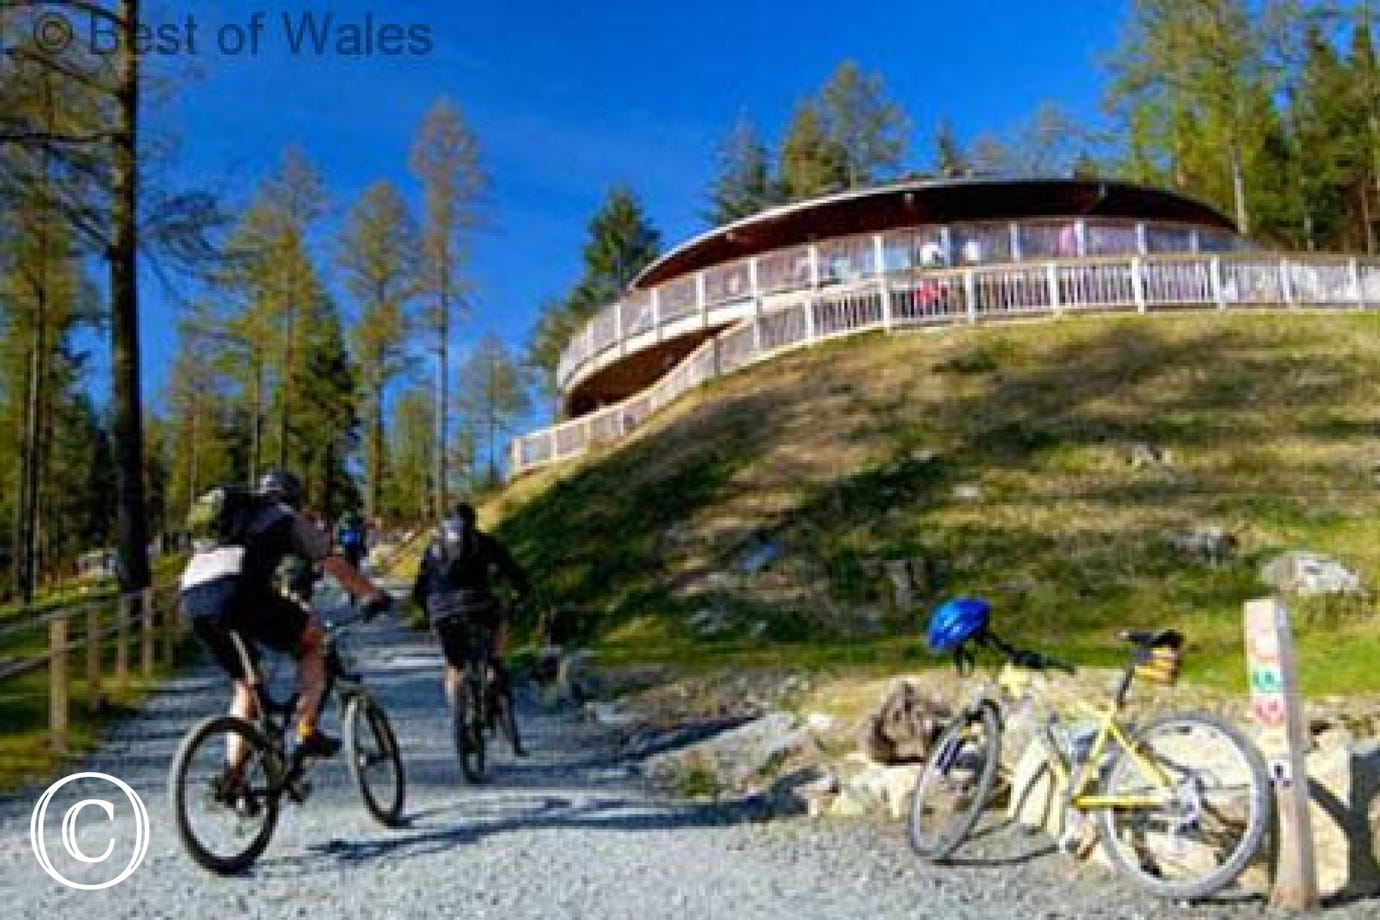 Coed-y-Brenin Mountain Biking Centre - just 9 miles from the cottage